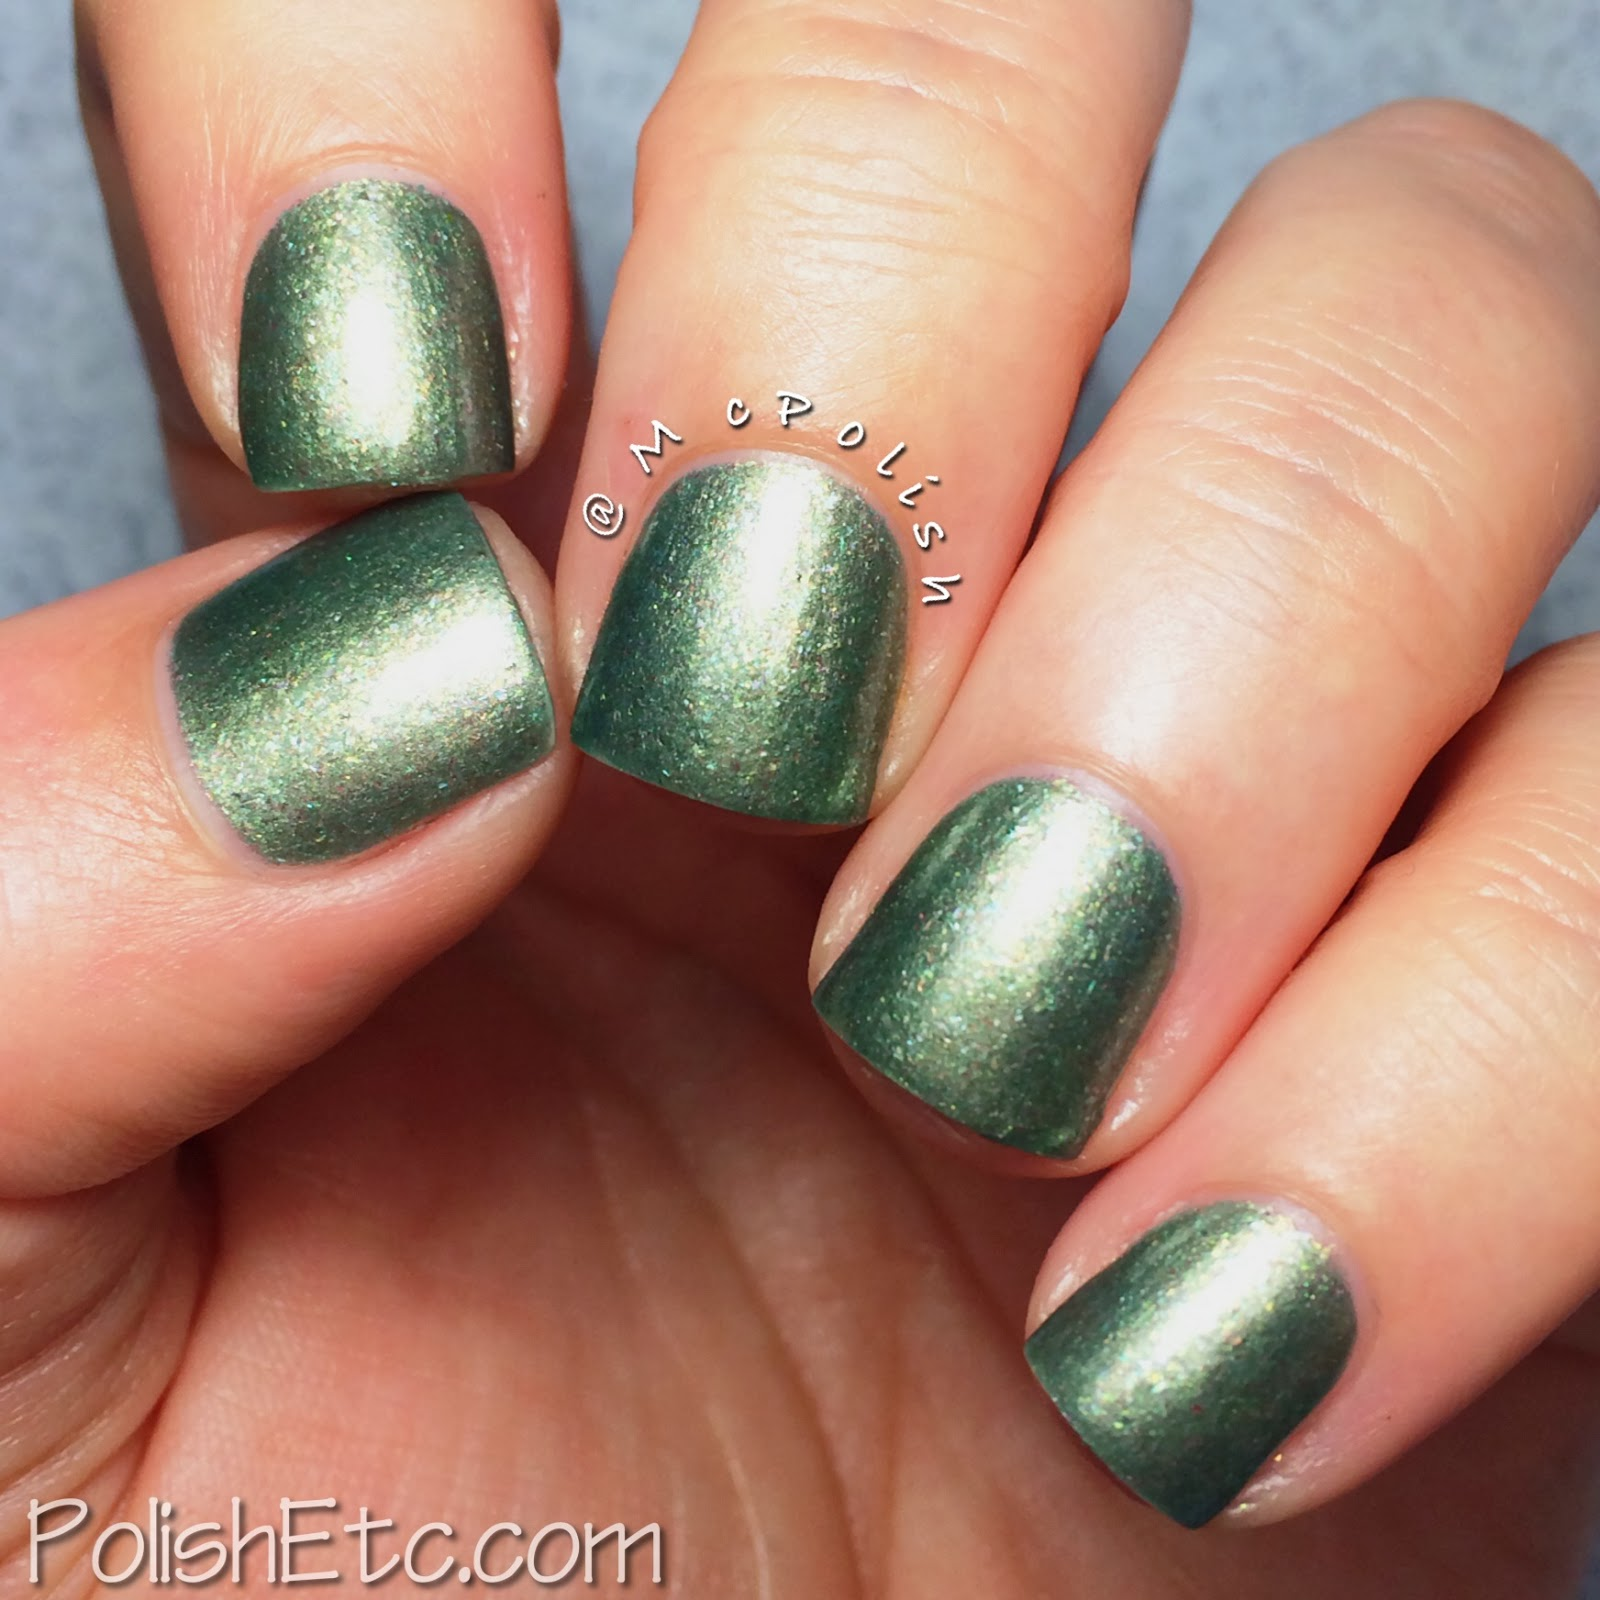 Freak Show Polish - Green Eggs and Ham